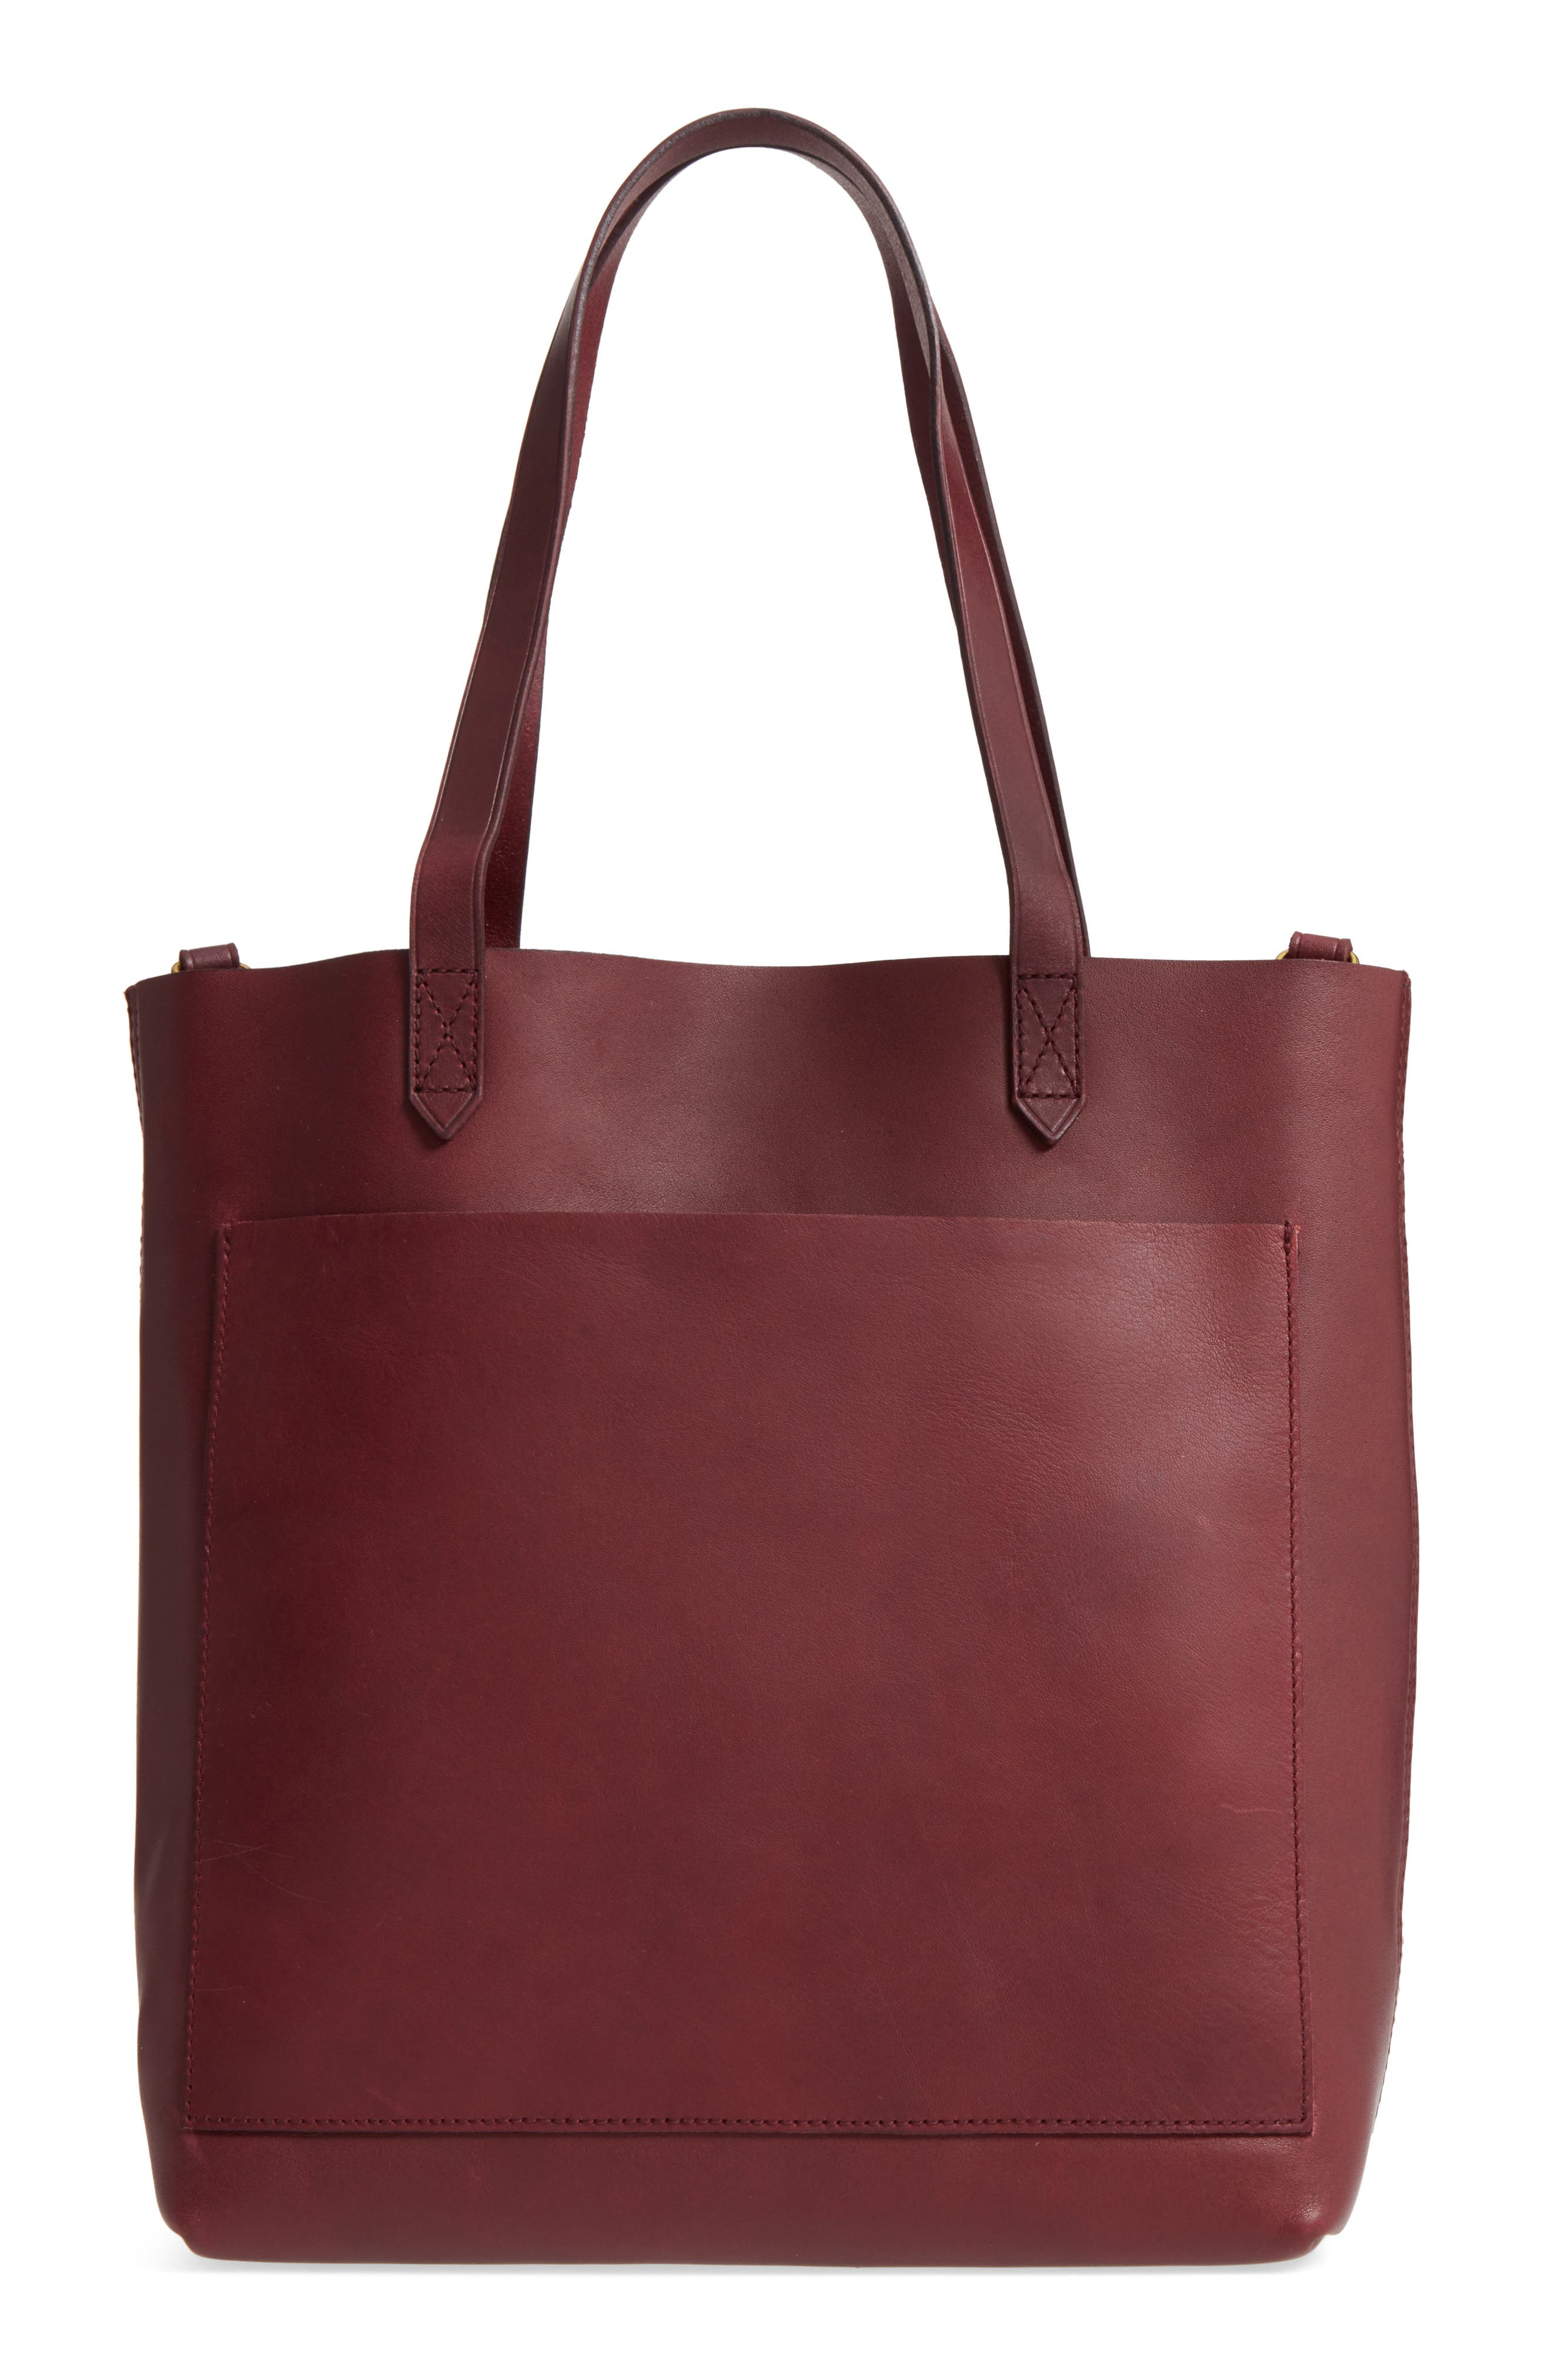 Medium Leather Transport Tote,                         Main,                         color, DARK CABERNET